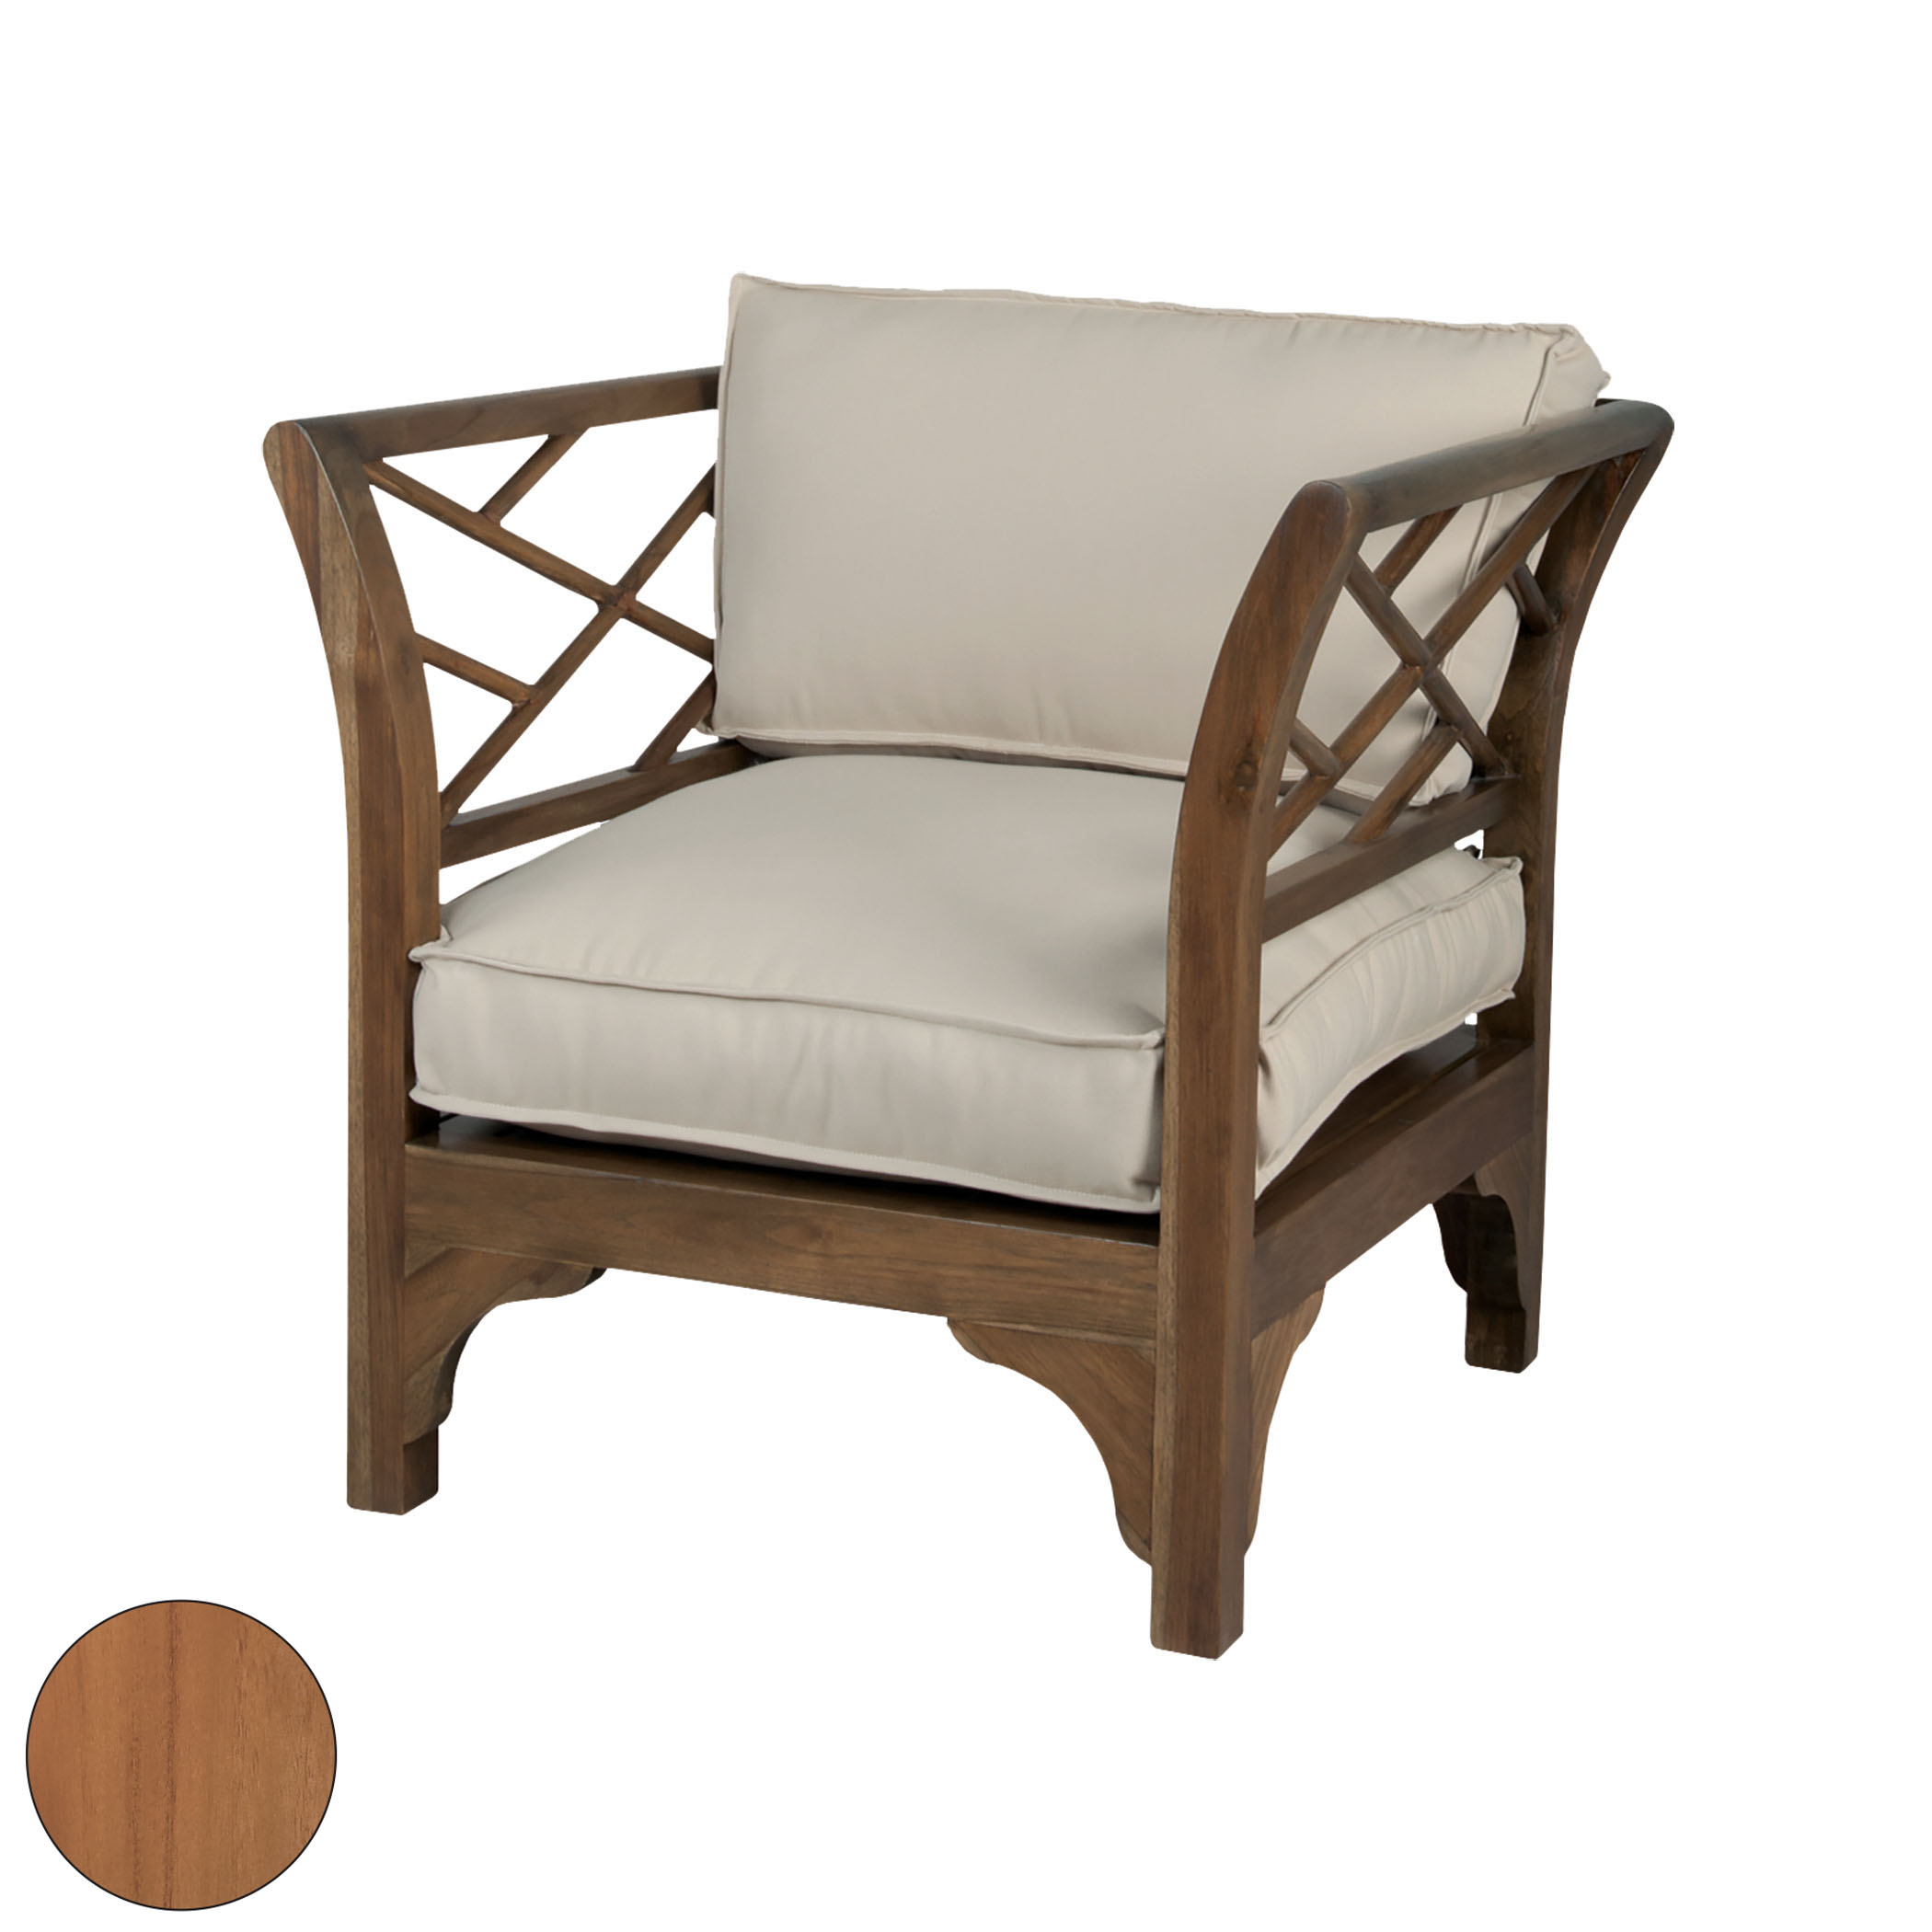 Teak Patio Chair in Euro Teak Oil | Elk Home